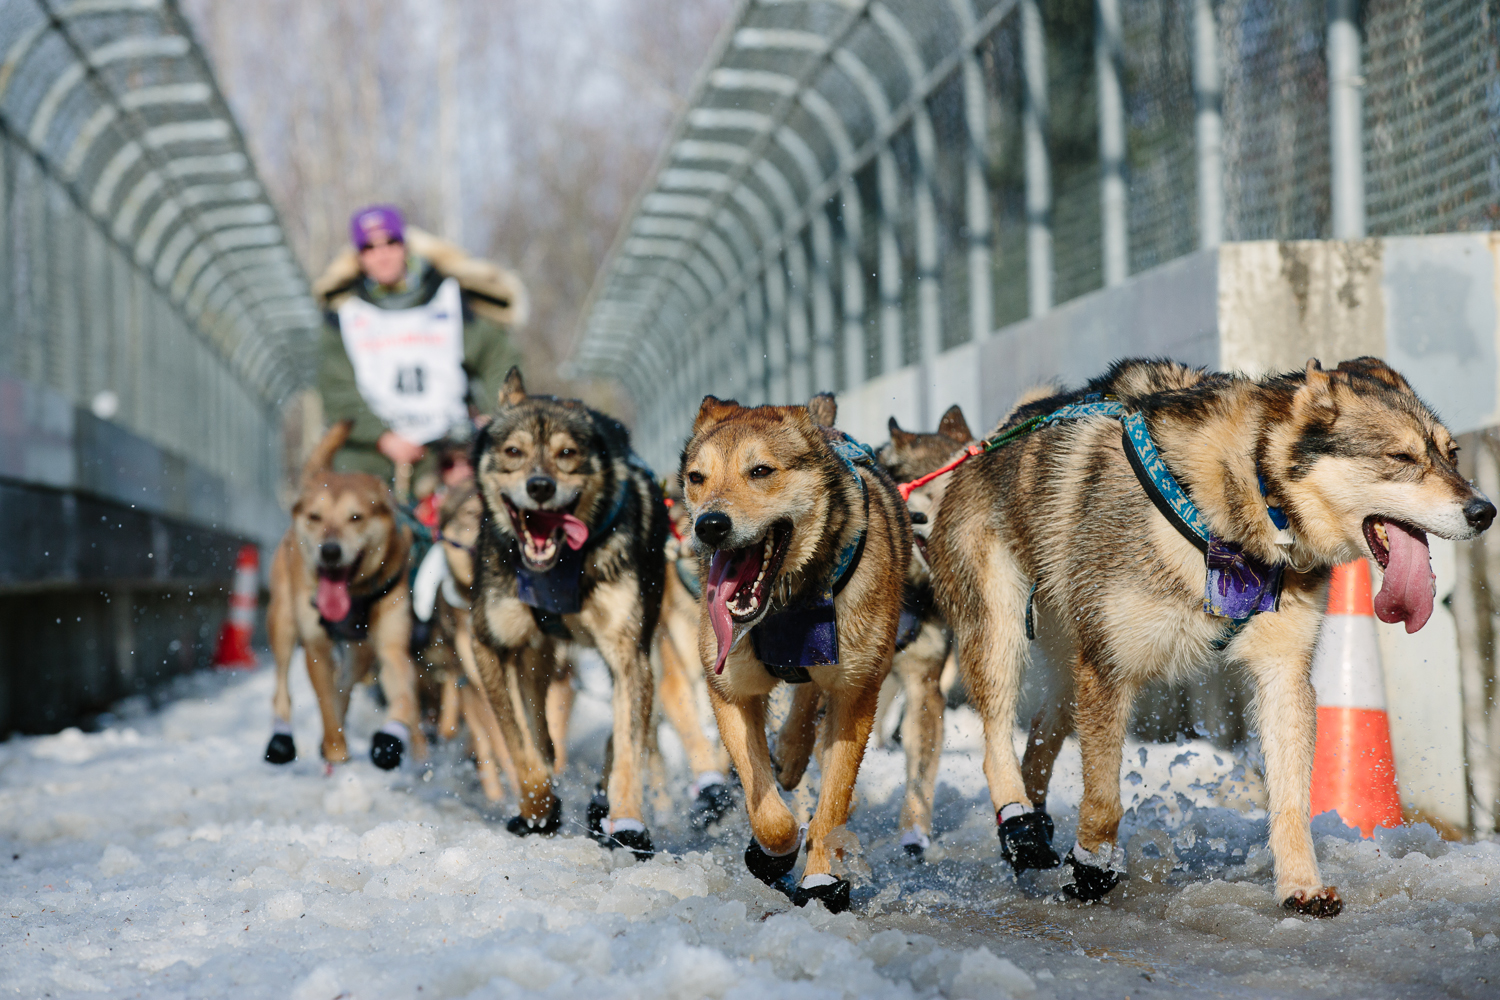 The dog team of Byron Bearss ran through warm, slushy conditions at the start of the 2015 Iditarod in Anchorage, Alaska. March 7, 2015